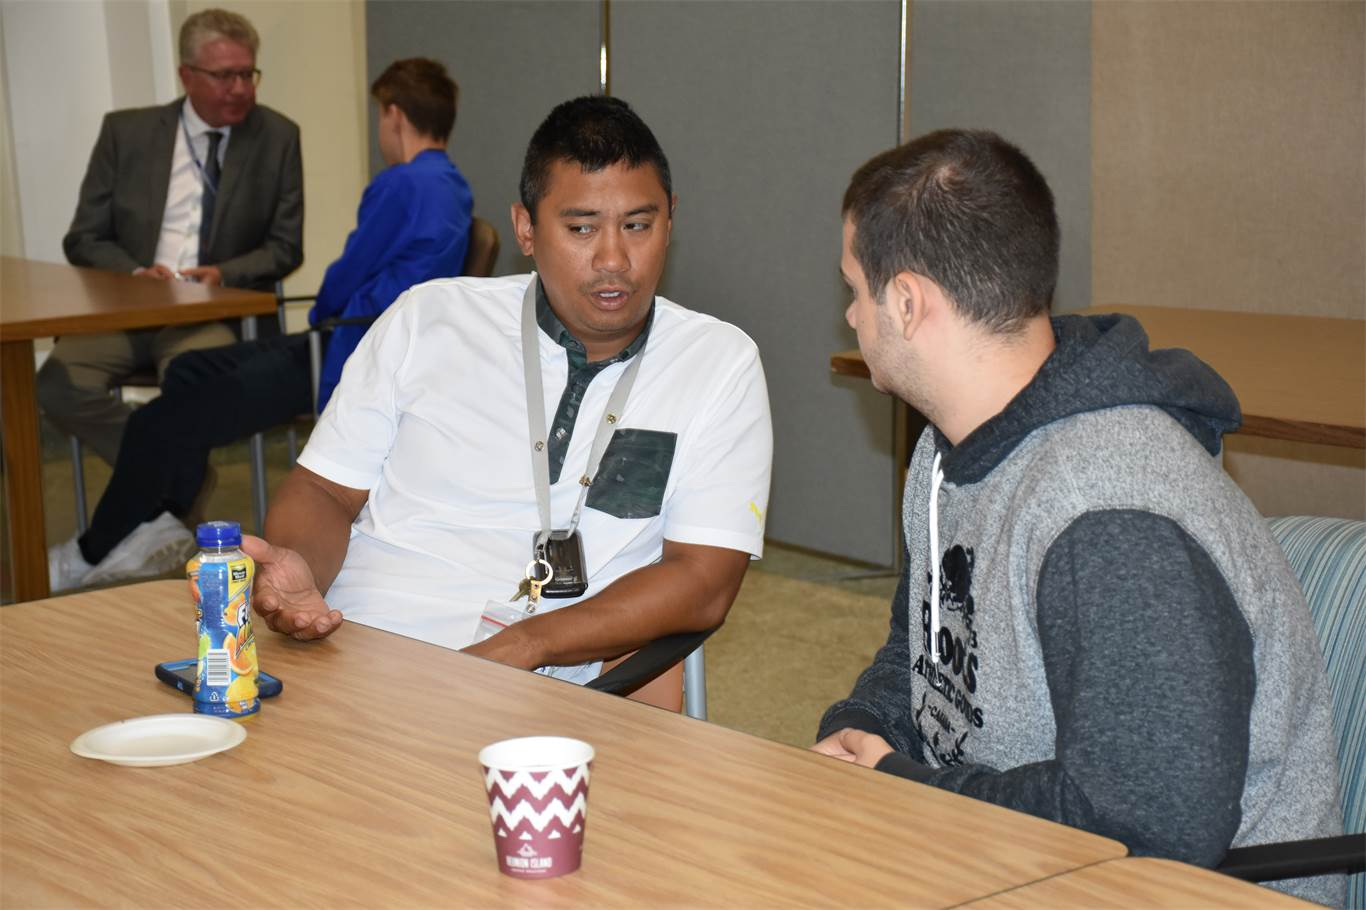 Students meet with mentors twice a week to learn about jobs and pathways.